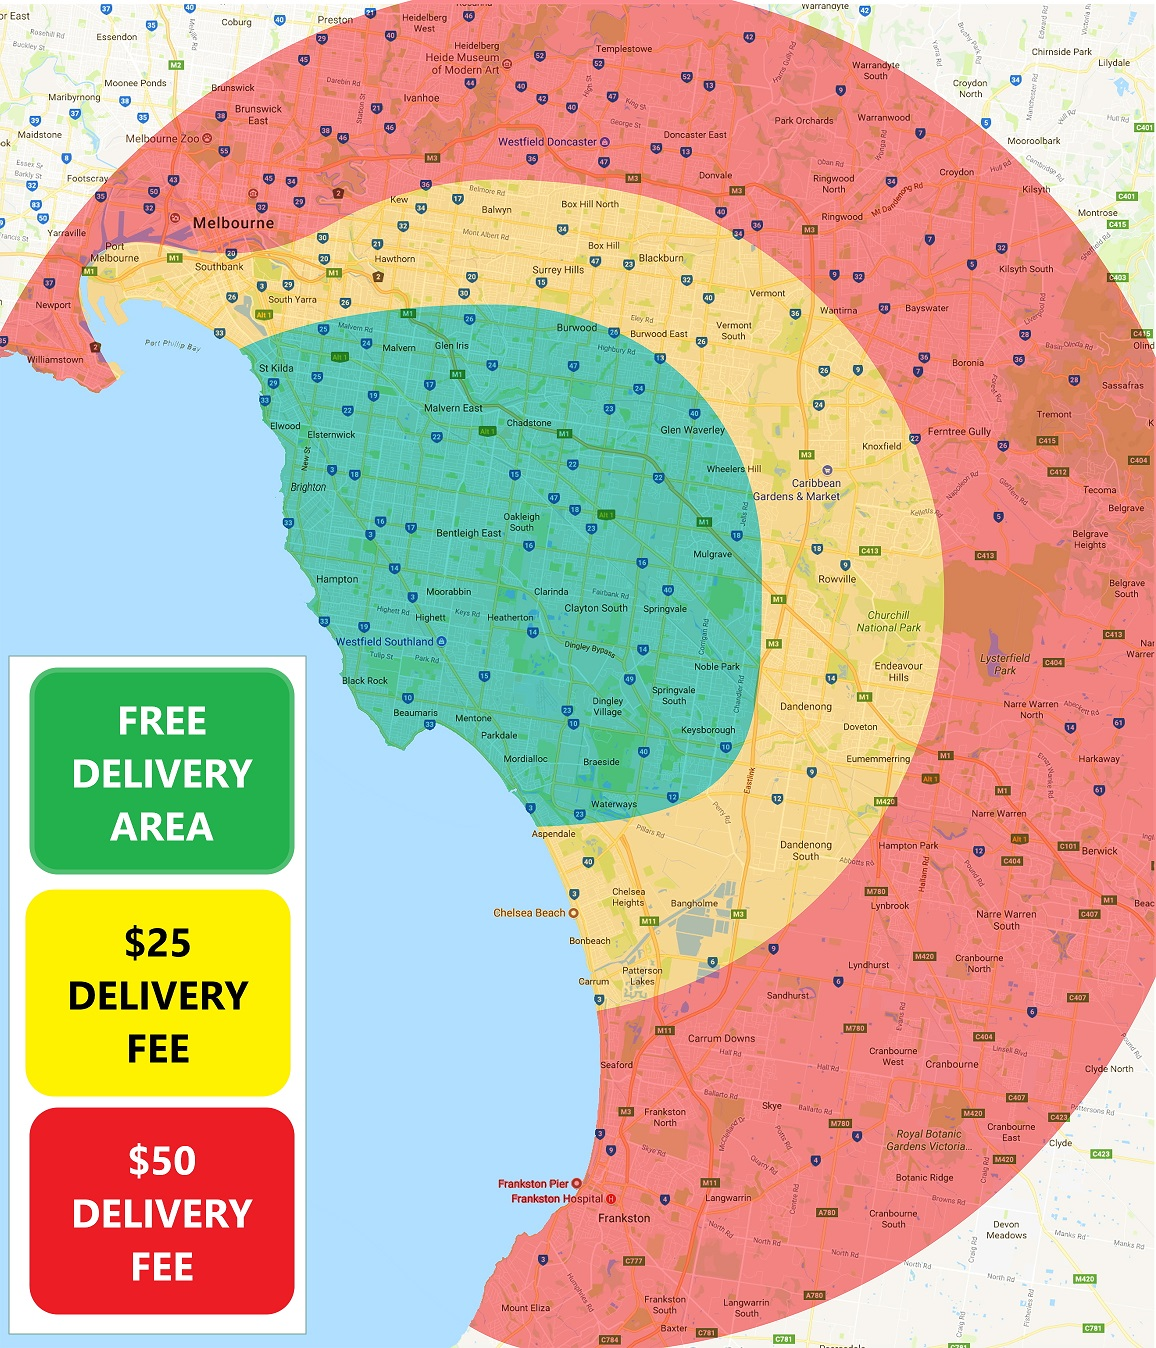 Delivery Frees map